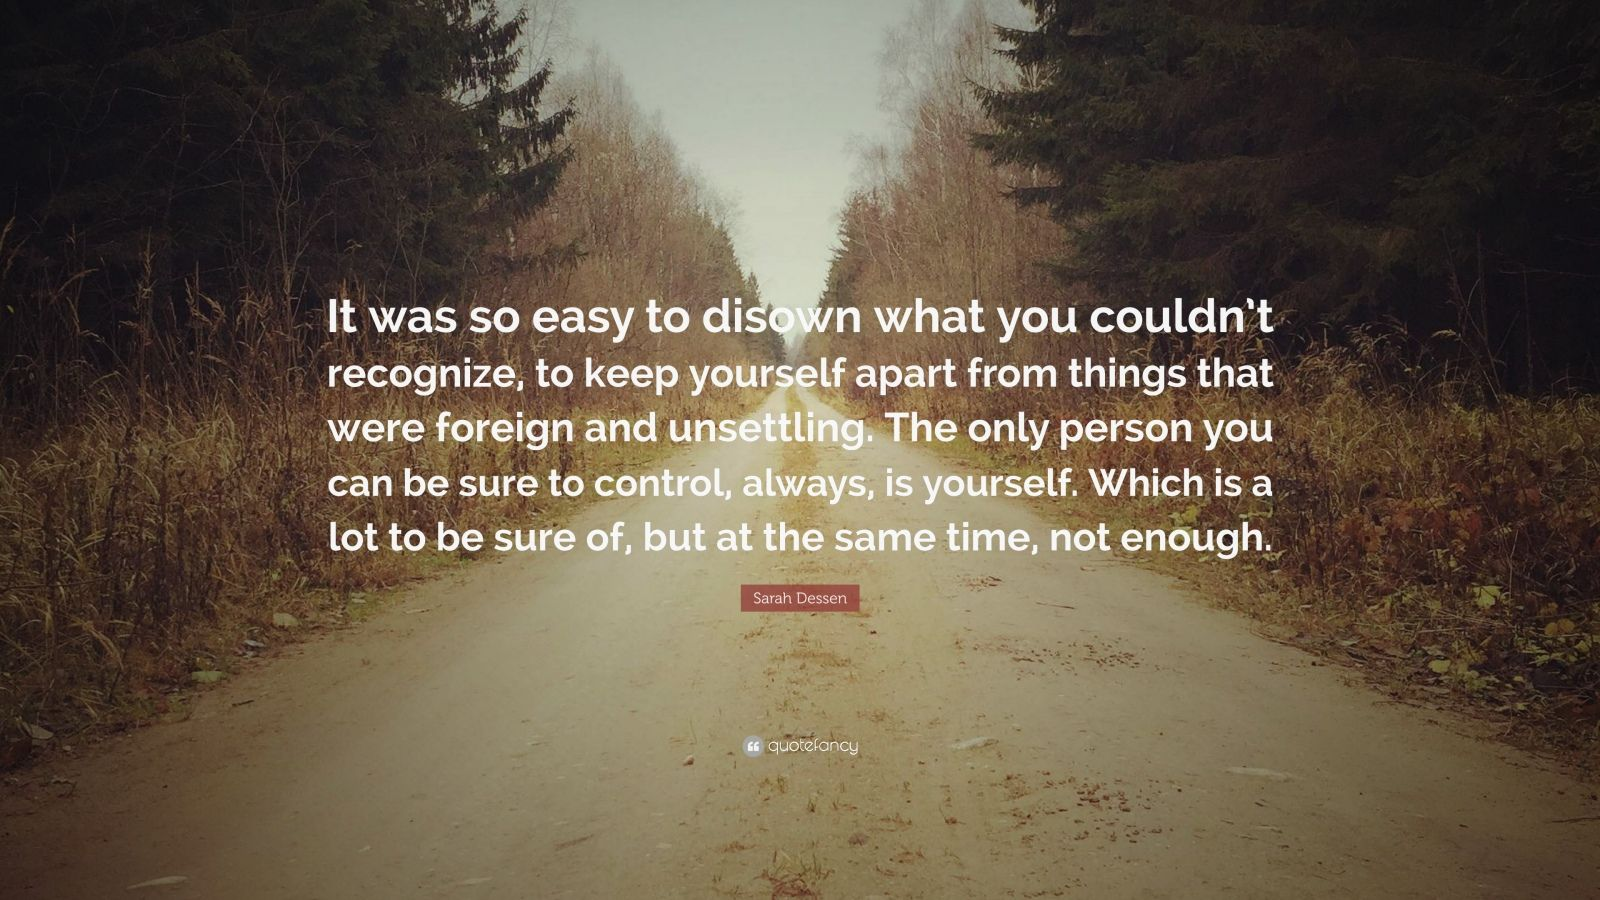 "Sarah Dessen Quote: ""It was so easy to disown what you couldn't recognize, to keep yourself apart from things that were foreign and unsettling. The only person you can be sure to control, always, is yourself. Which is a lot to be sure of, but at the same time, not enough."""